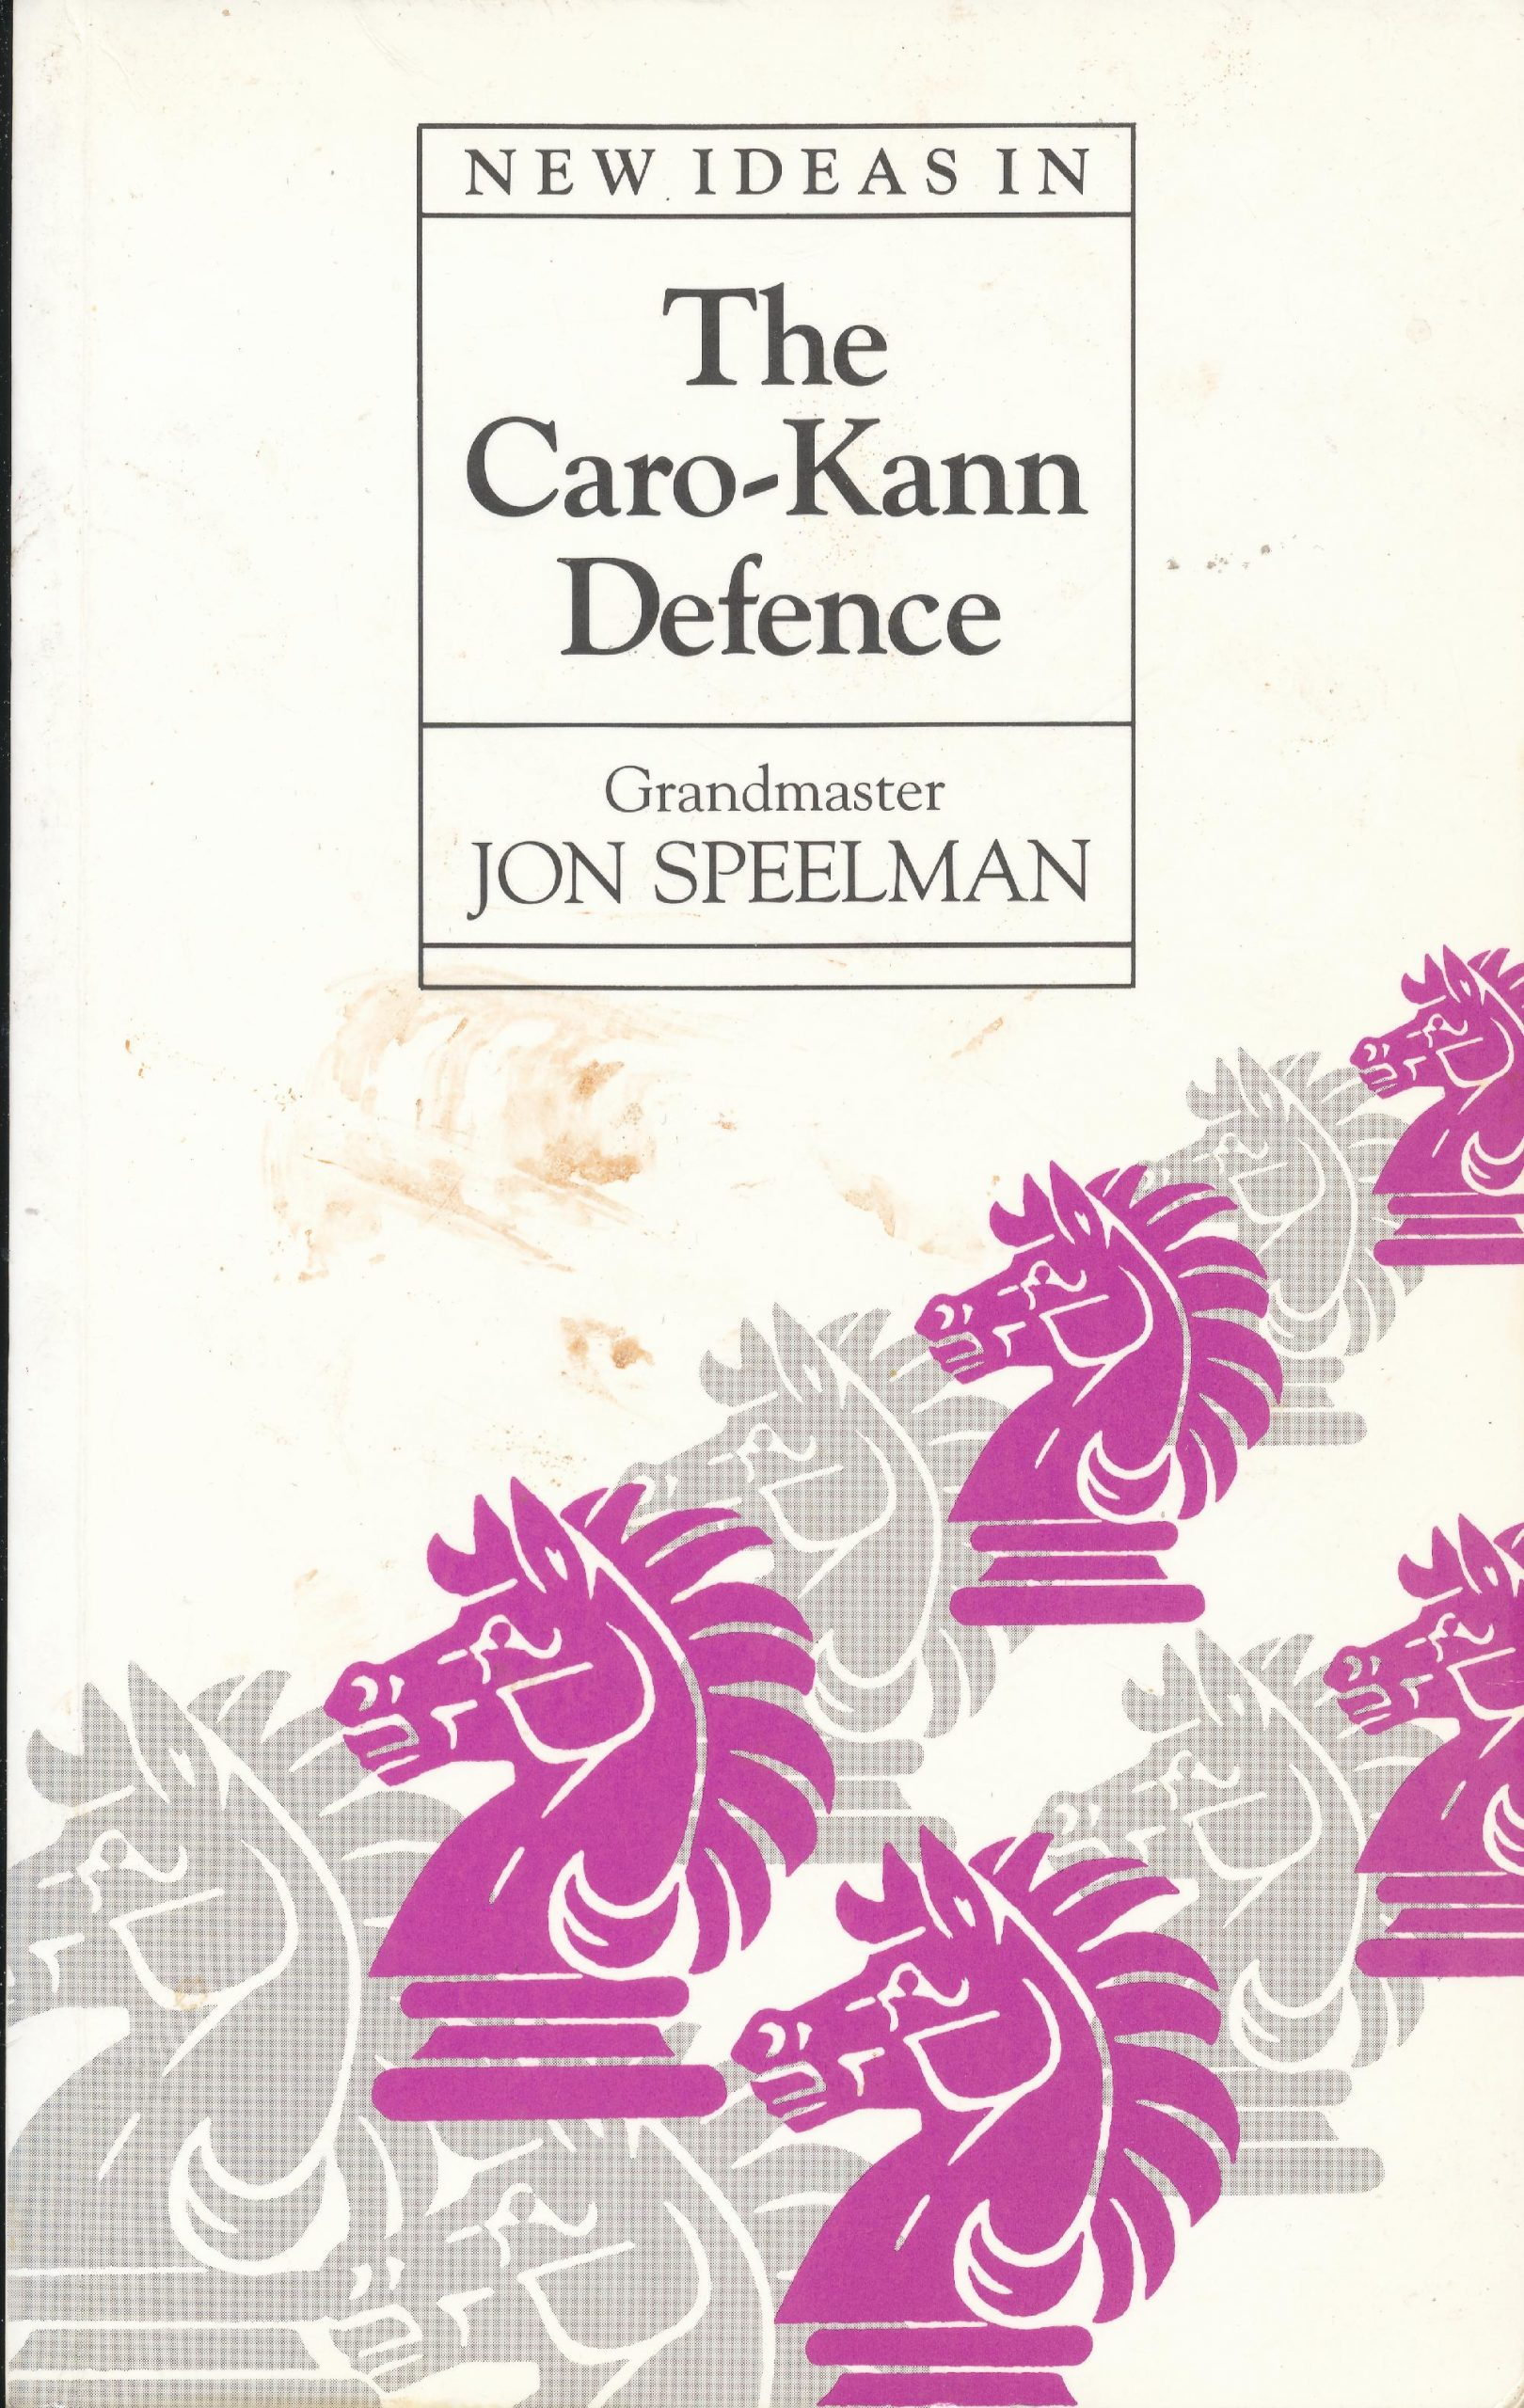 Speelman, Jon (1992). New Ideas in the Caro-Kann Defence. BT Batsford (London, England). 155 pages. ISBN 0-7134-6915-3.